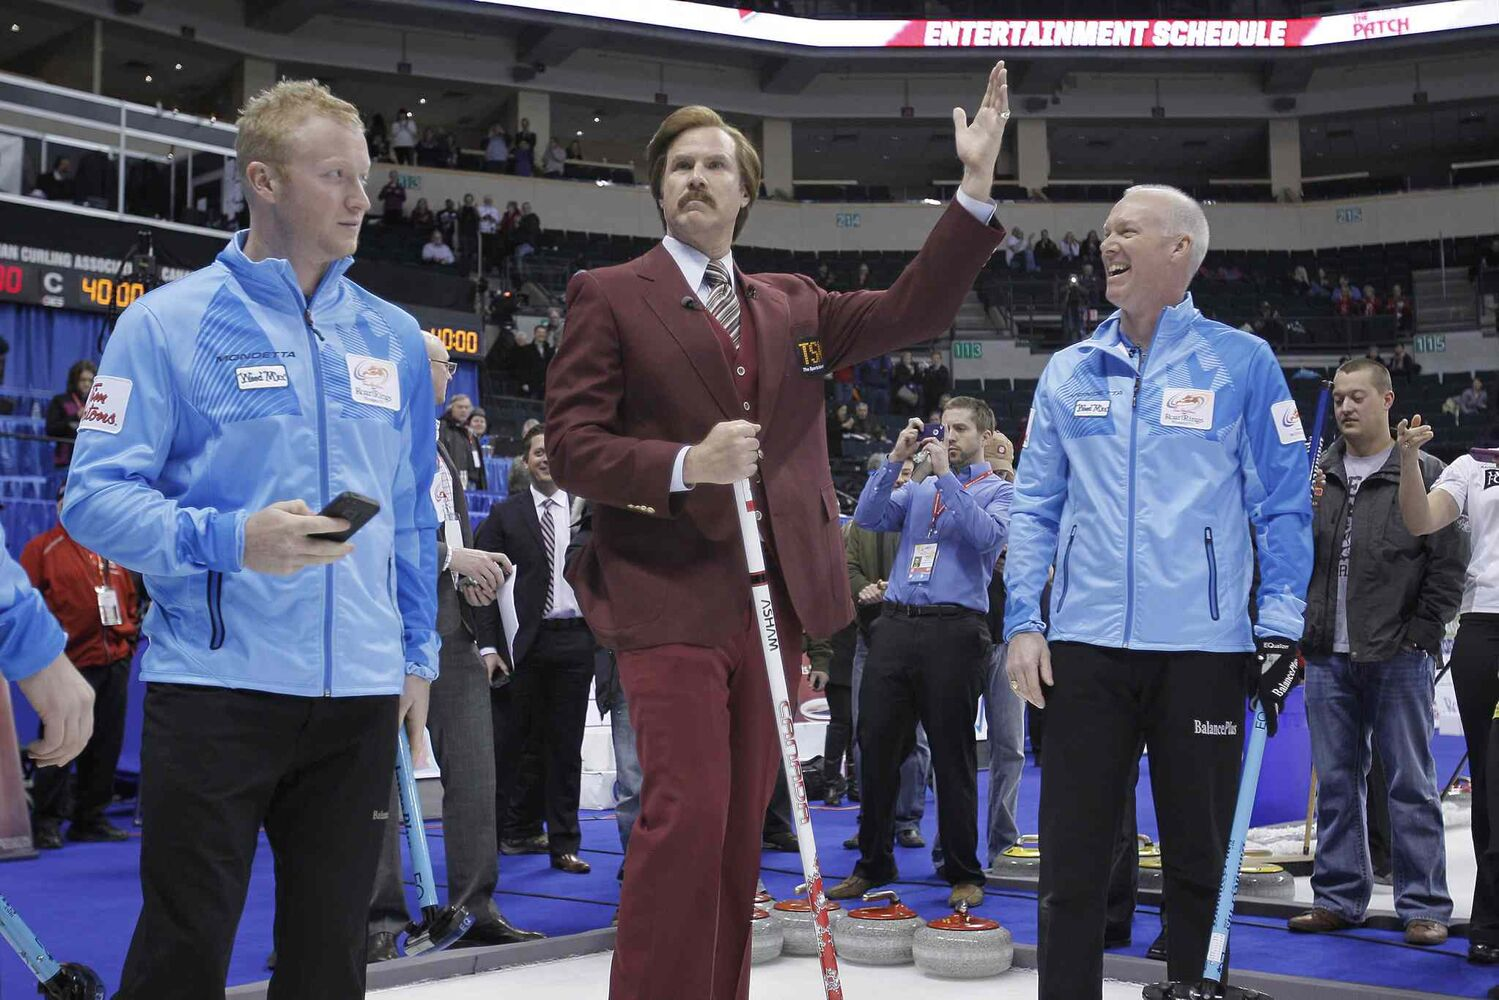 Burgundy celebrates after releasing a rock as Glenn Howard (right) and his team look on after opening ceremony.